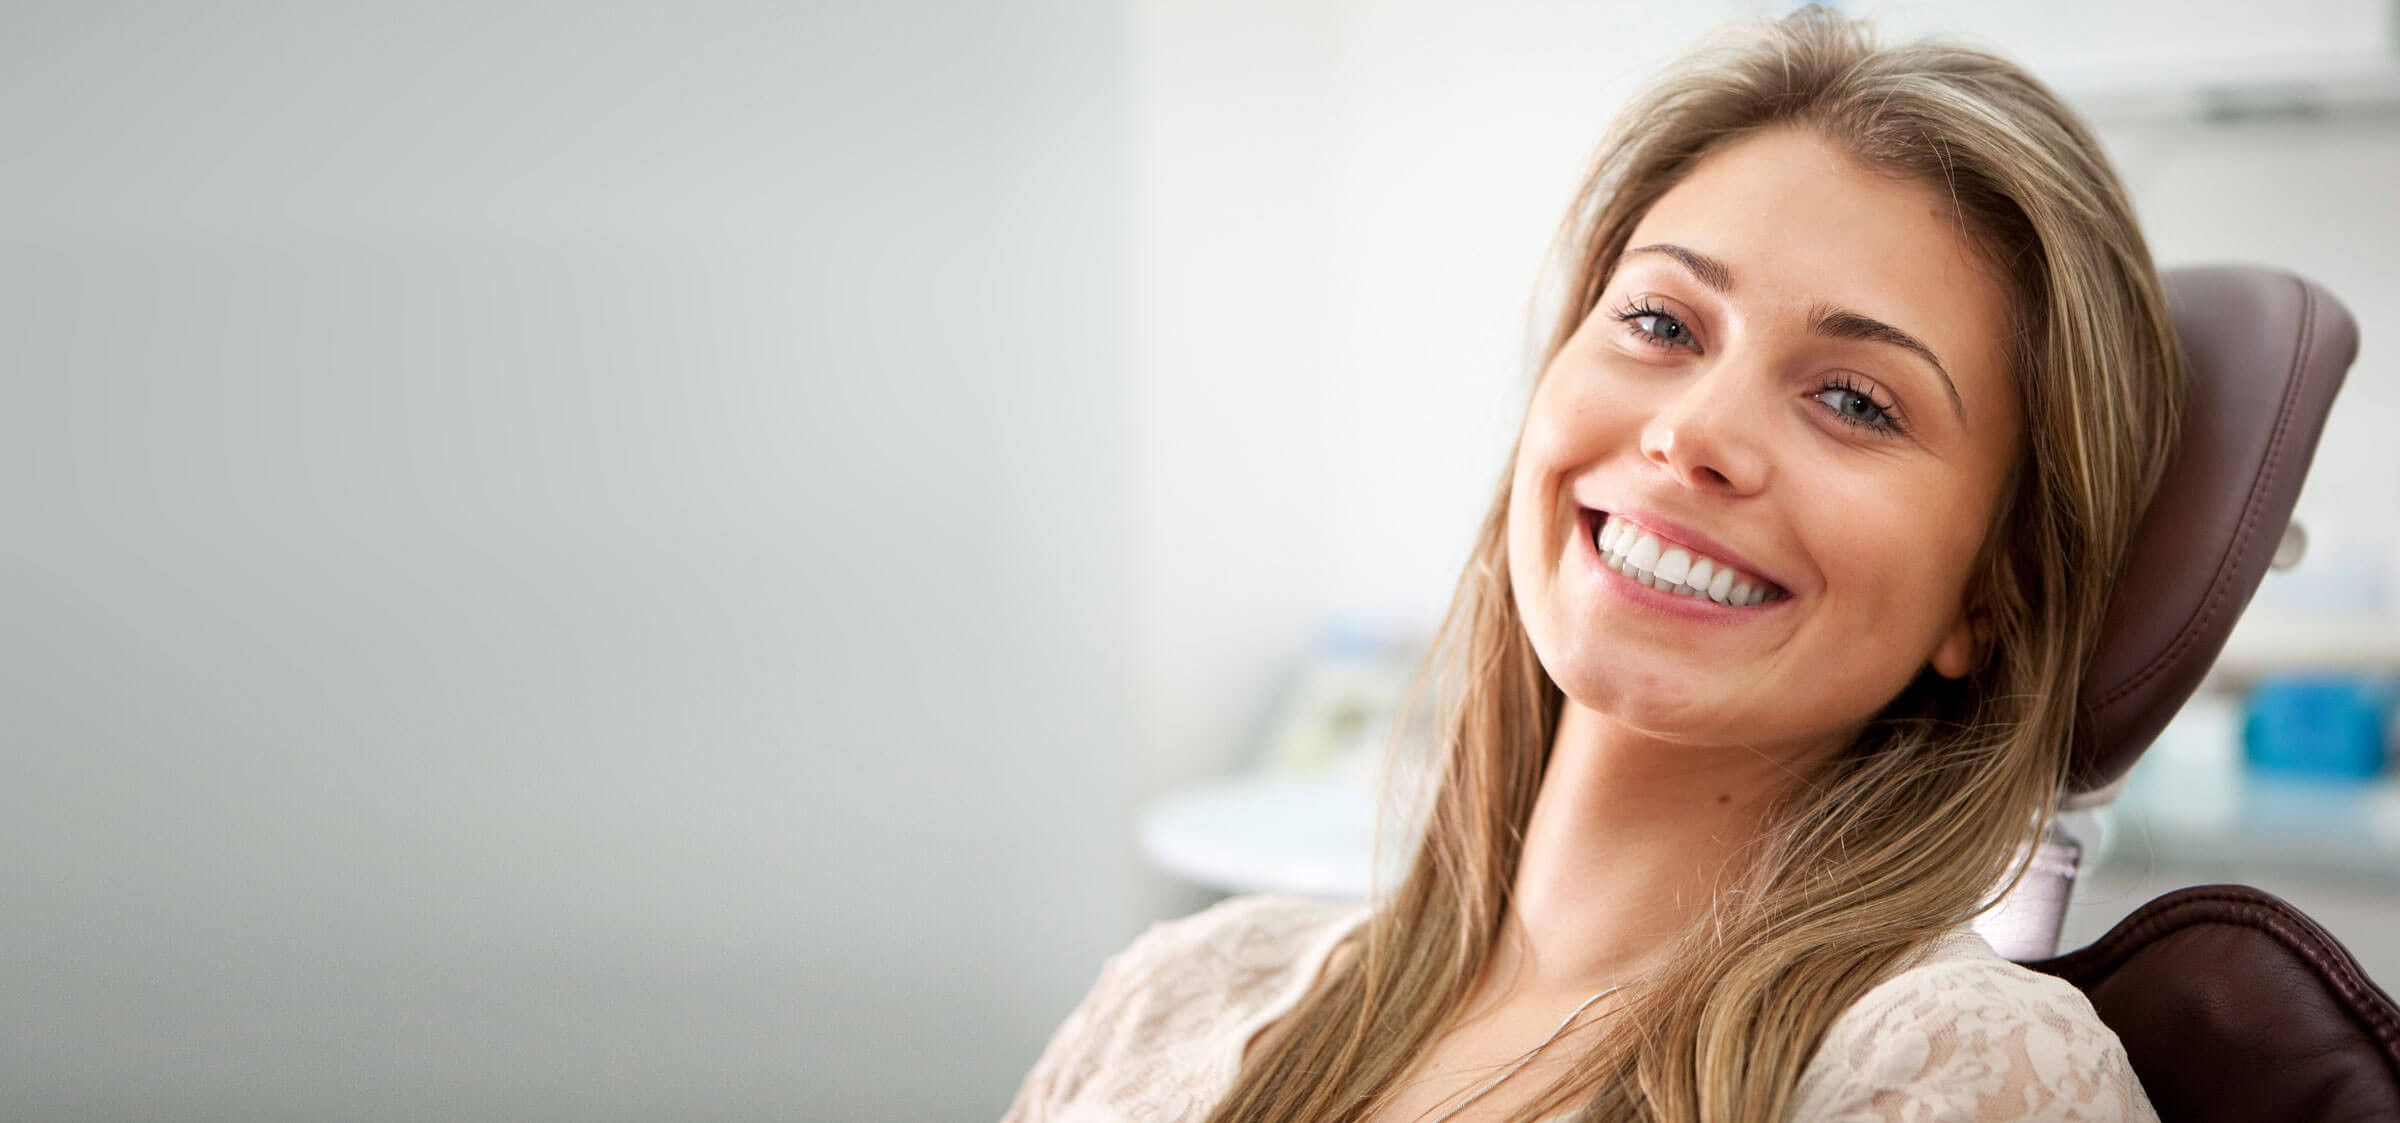 Cosmetic Dentistry - Painful or Painless?